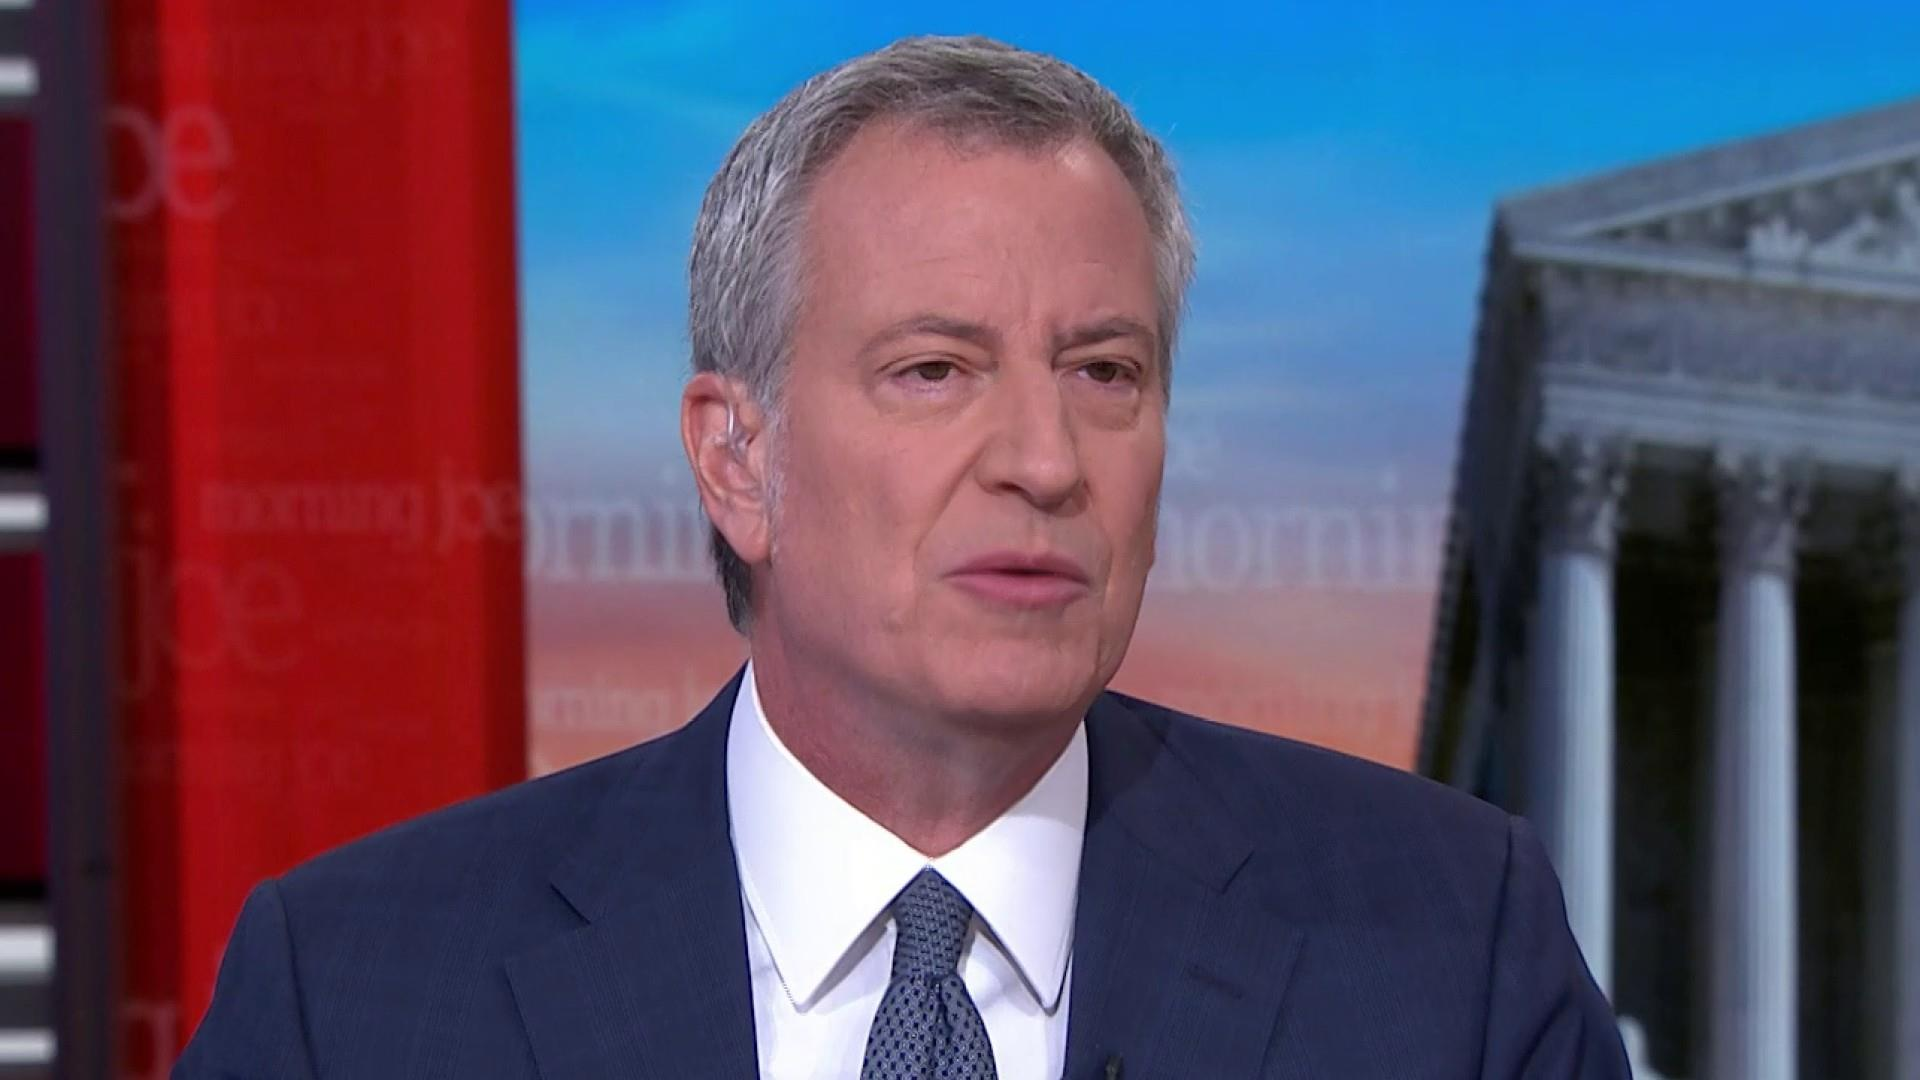 NYC mayor: Bloomberg not being authentic on stop-and-frisk